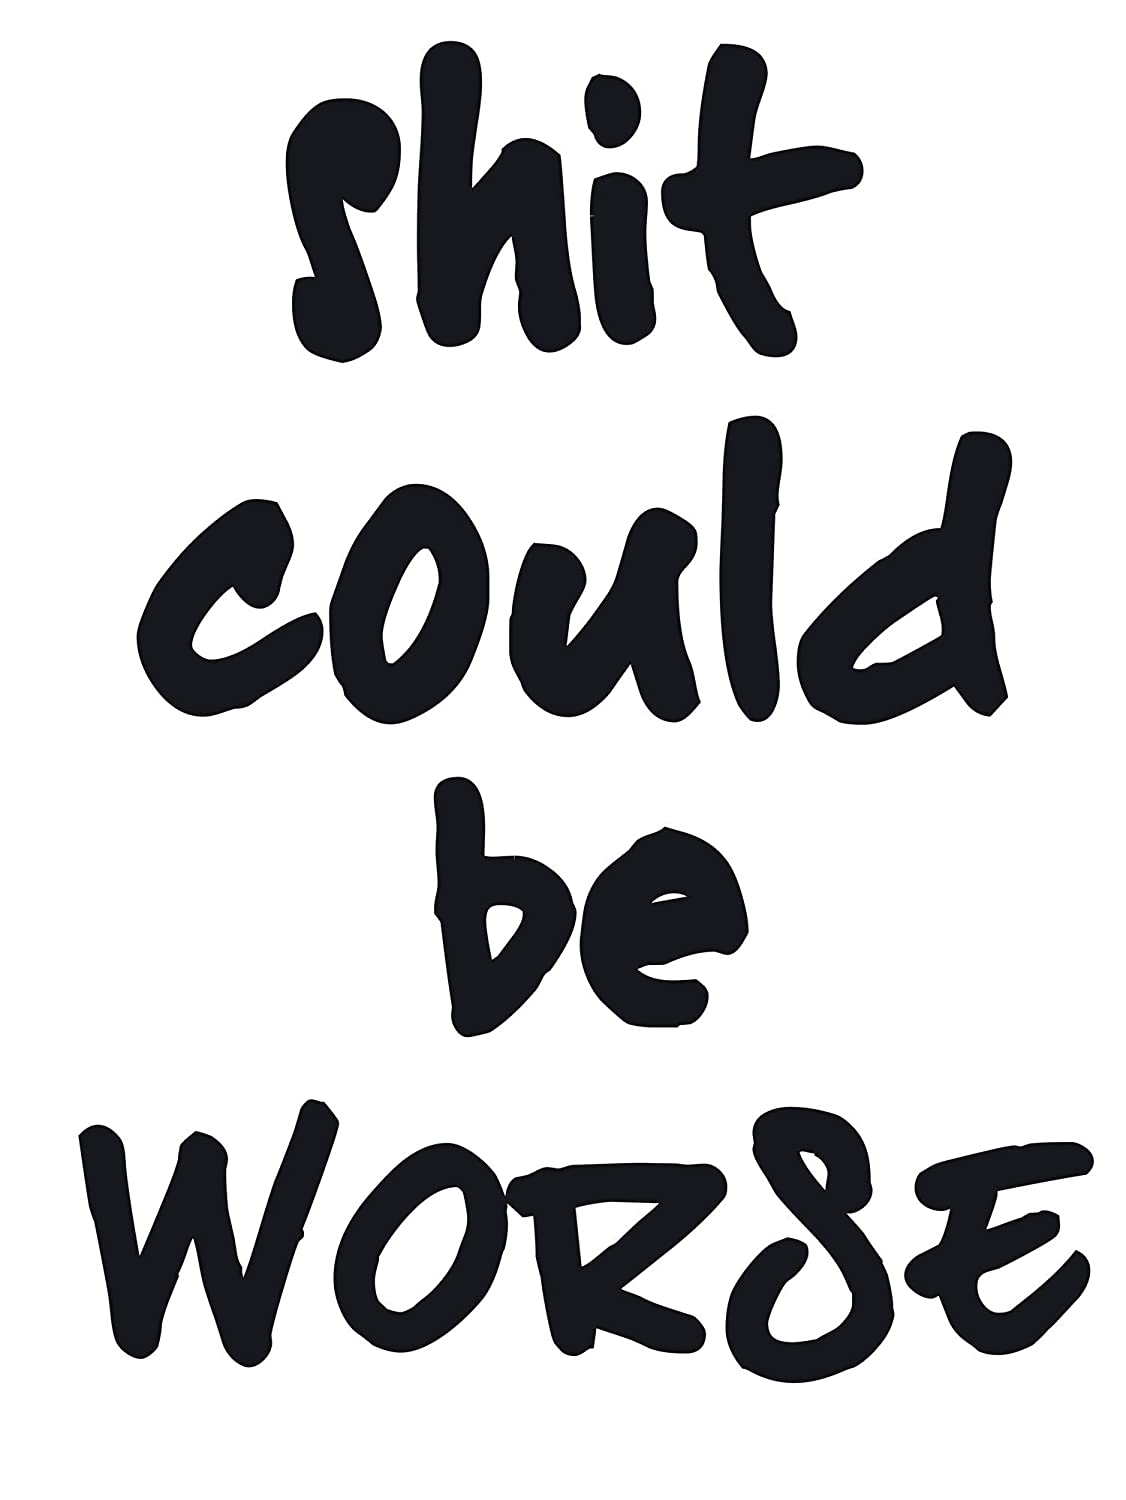 Amtoodopin shit could be worse quotes wall decal saying stickers wall sticker lettering vinyl wall art sticker decals motivational wall quotes decor for